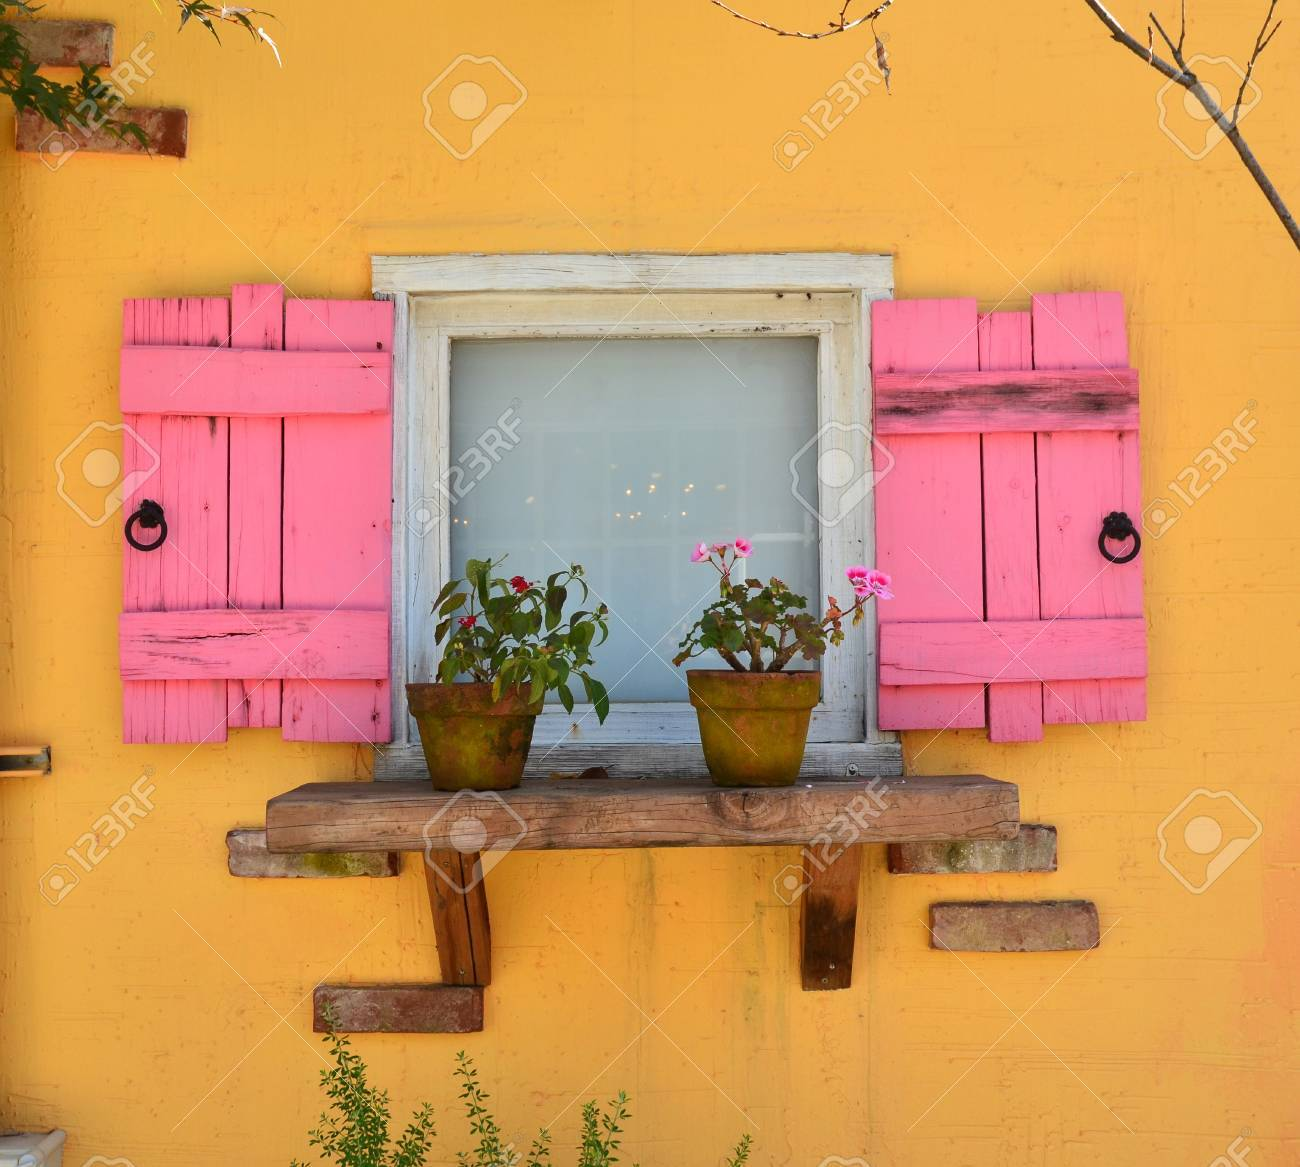 old open window and yellow wall Stock Photo - 10987681